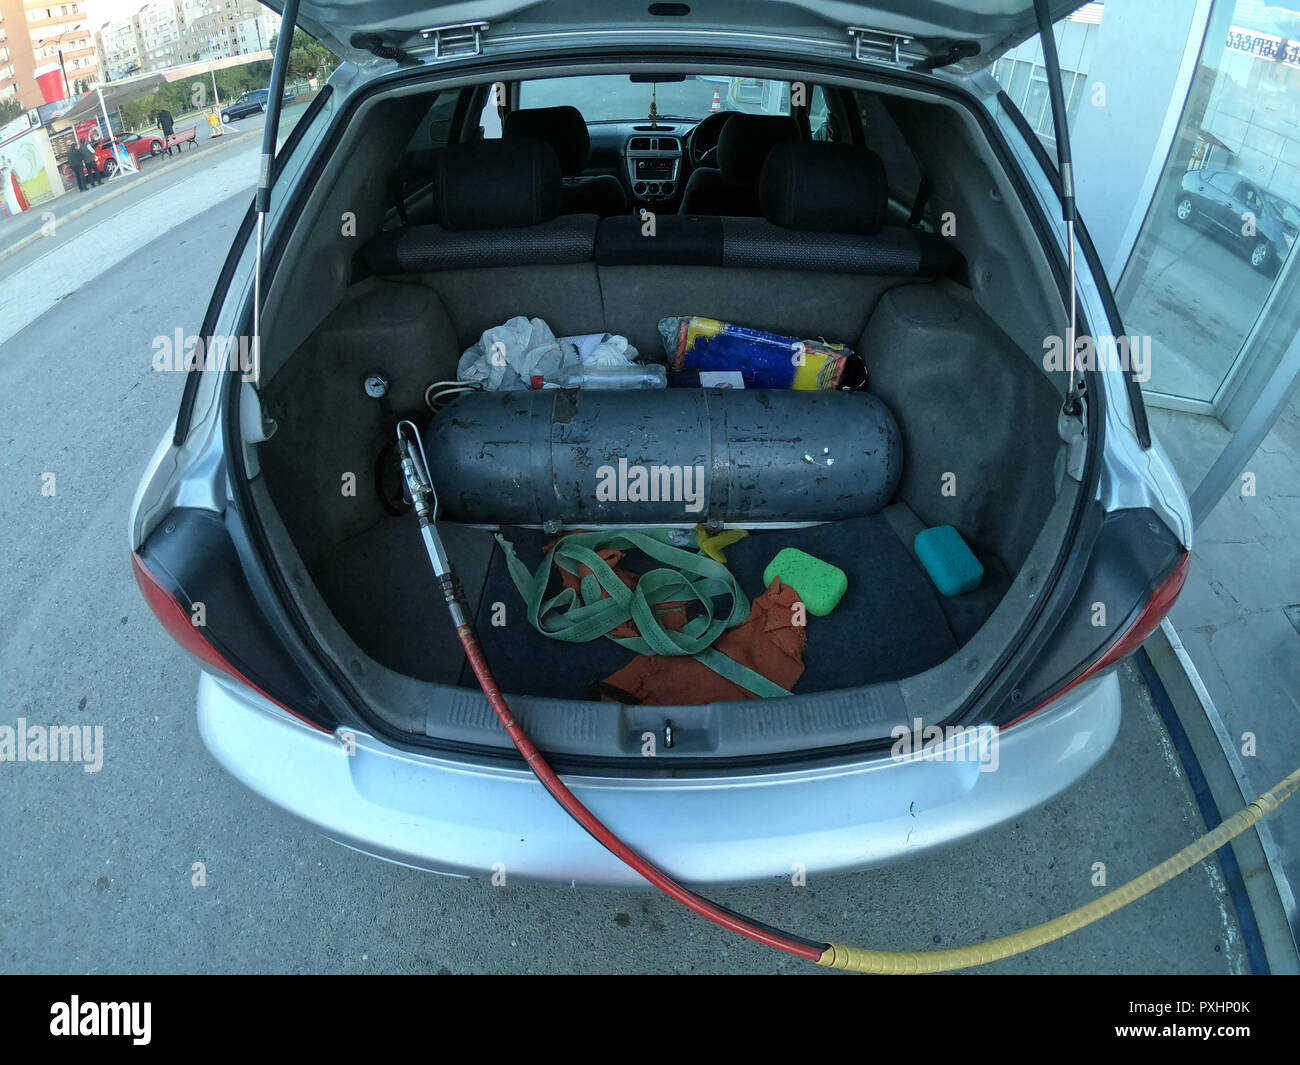 Filling the car with methane gas bottle in the trunk Stock Photo